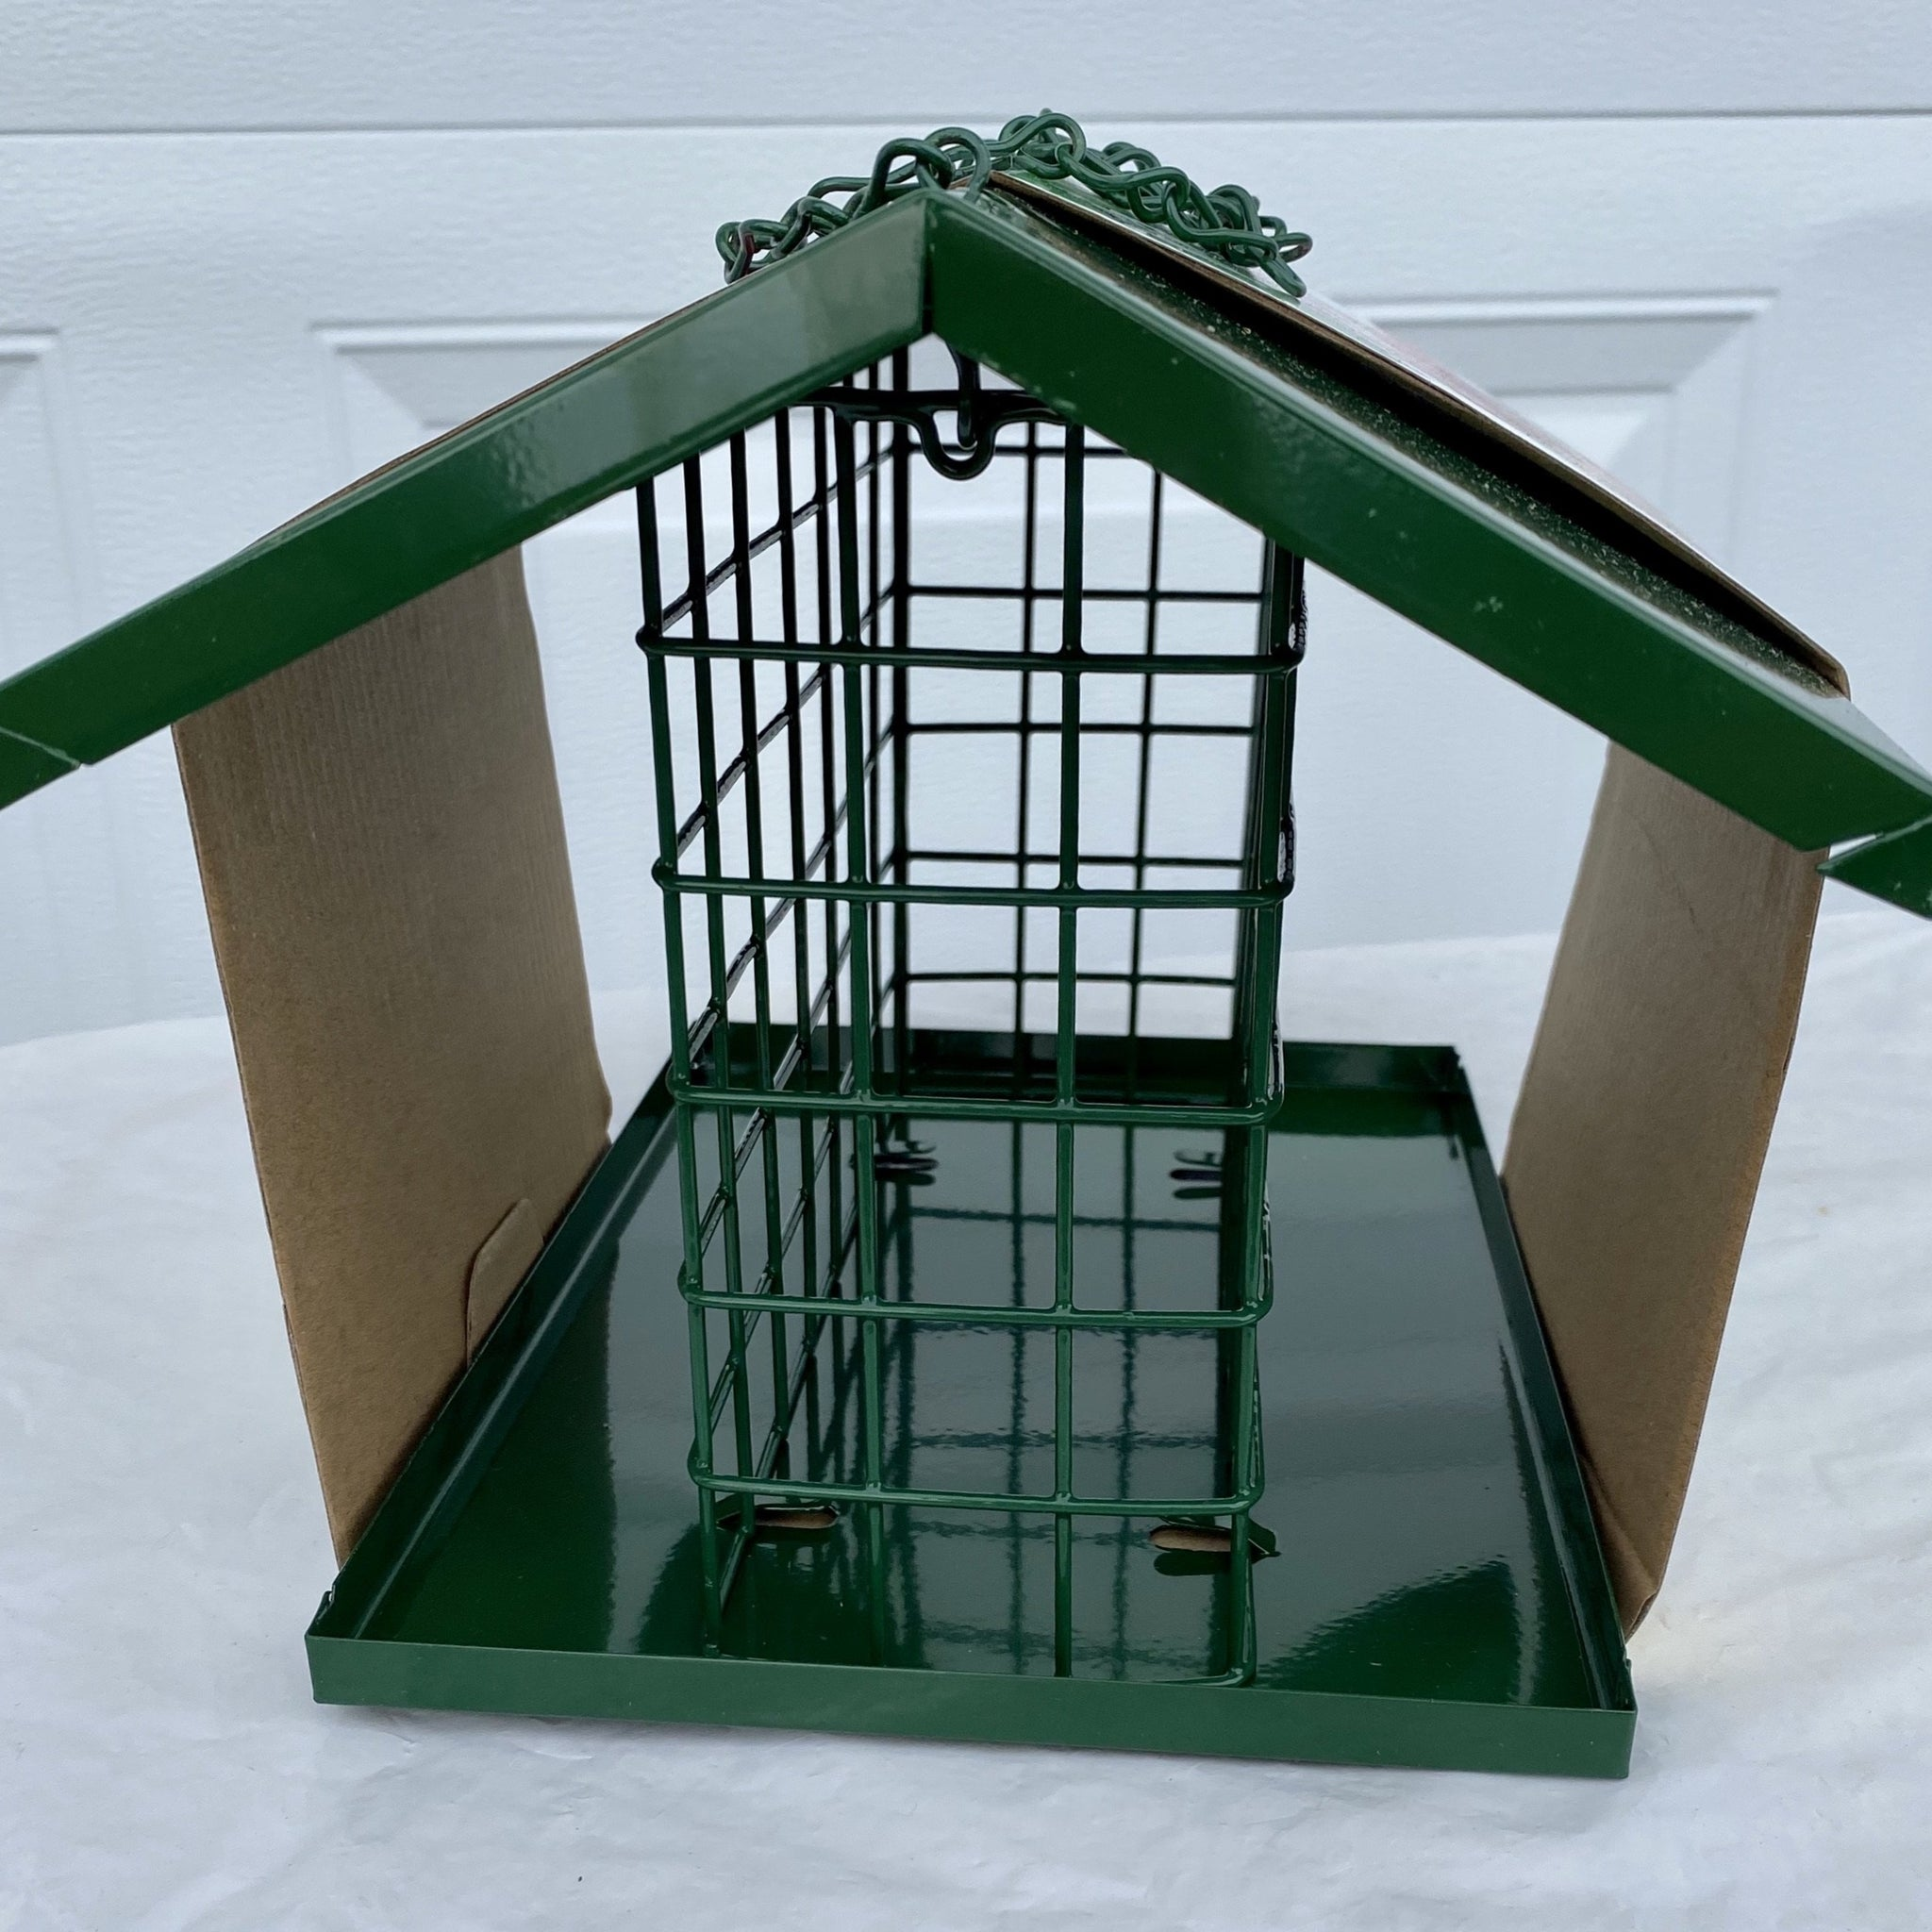 BIRD FEEDER, EZ FILL DELUXE SNAK / SUET FEEDER